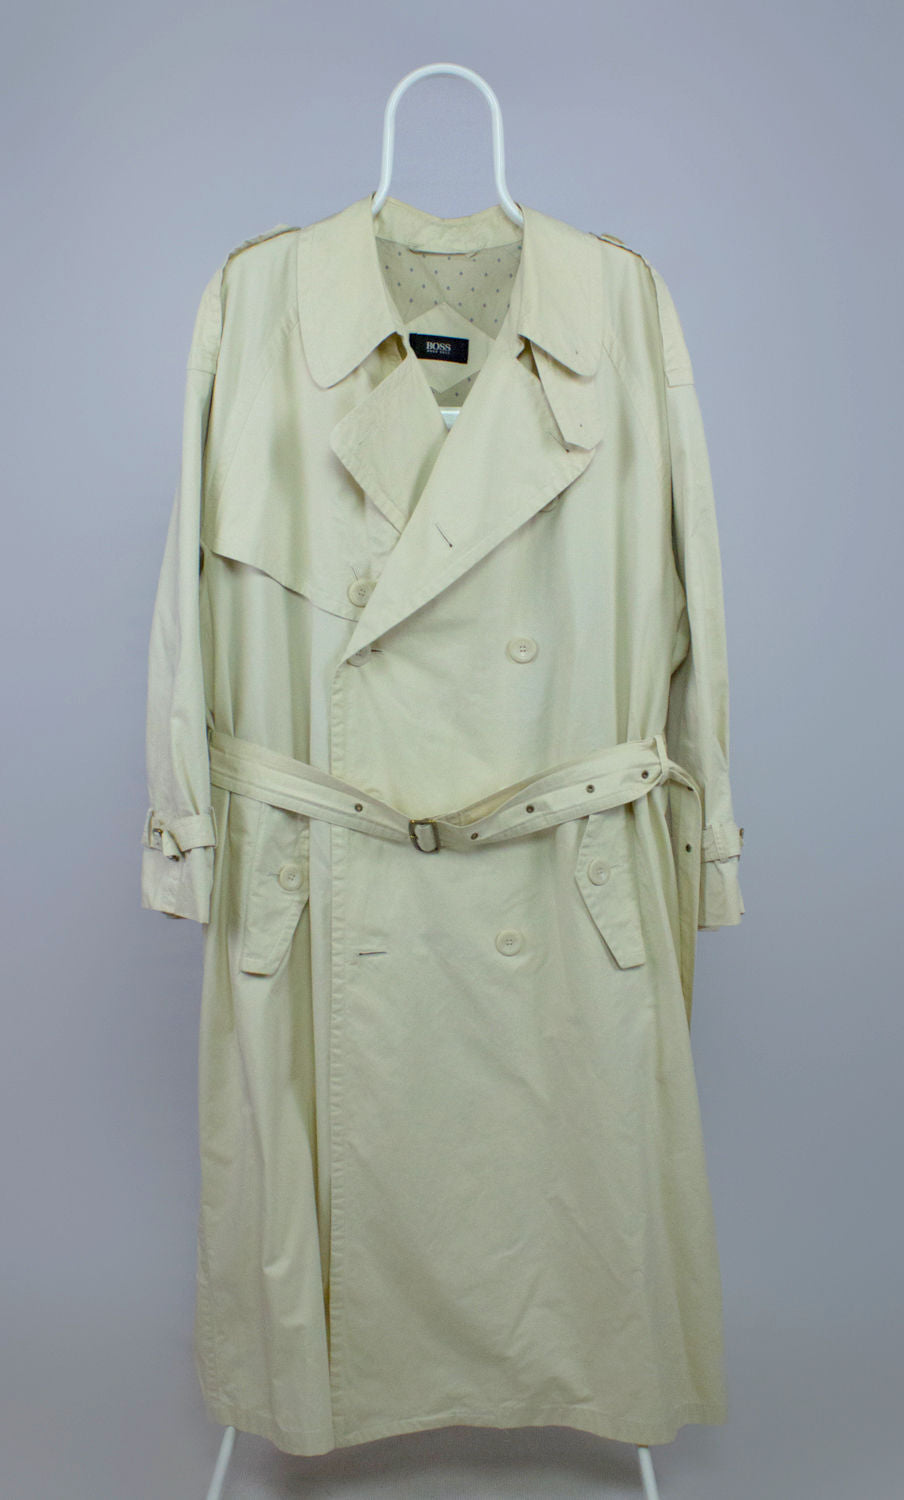 HUGO BOSS Men's Cream Trench Coat, US 40/EU 50 - secondfirst